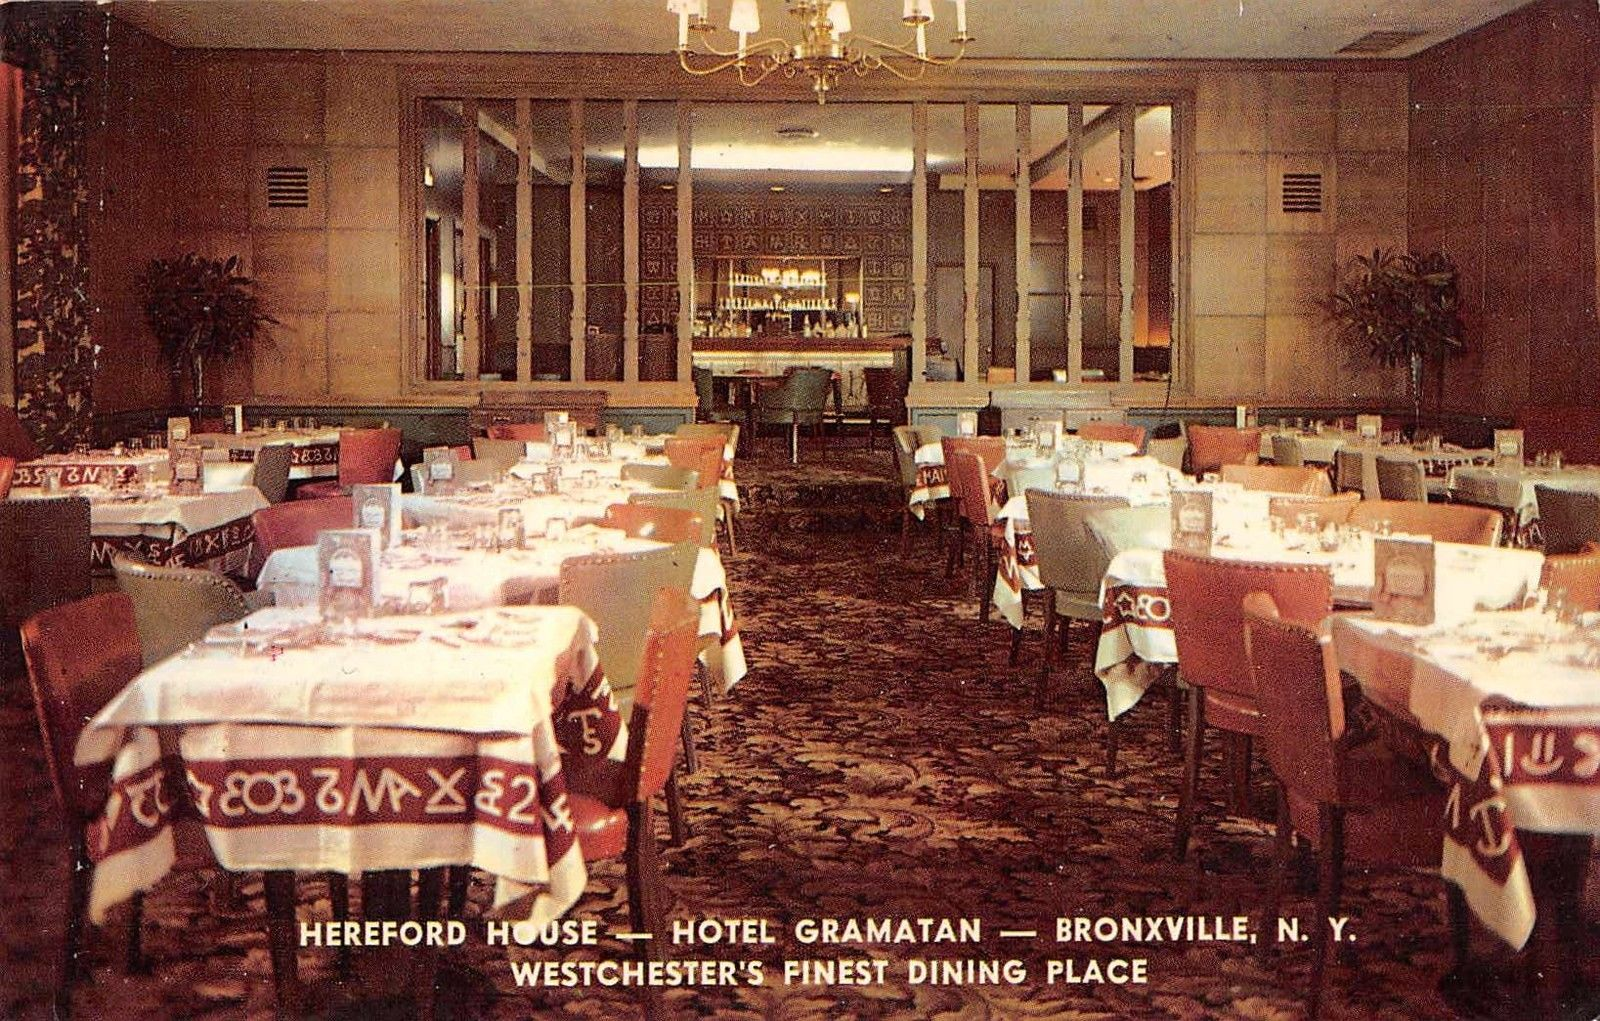 Bronxville New York Hotel Gramatan Hereford House Dining Vintage PC  (J33887)   Mary L. Martin Ltd. Postcards